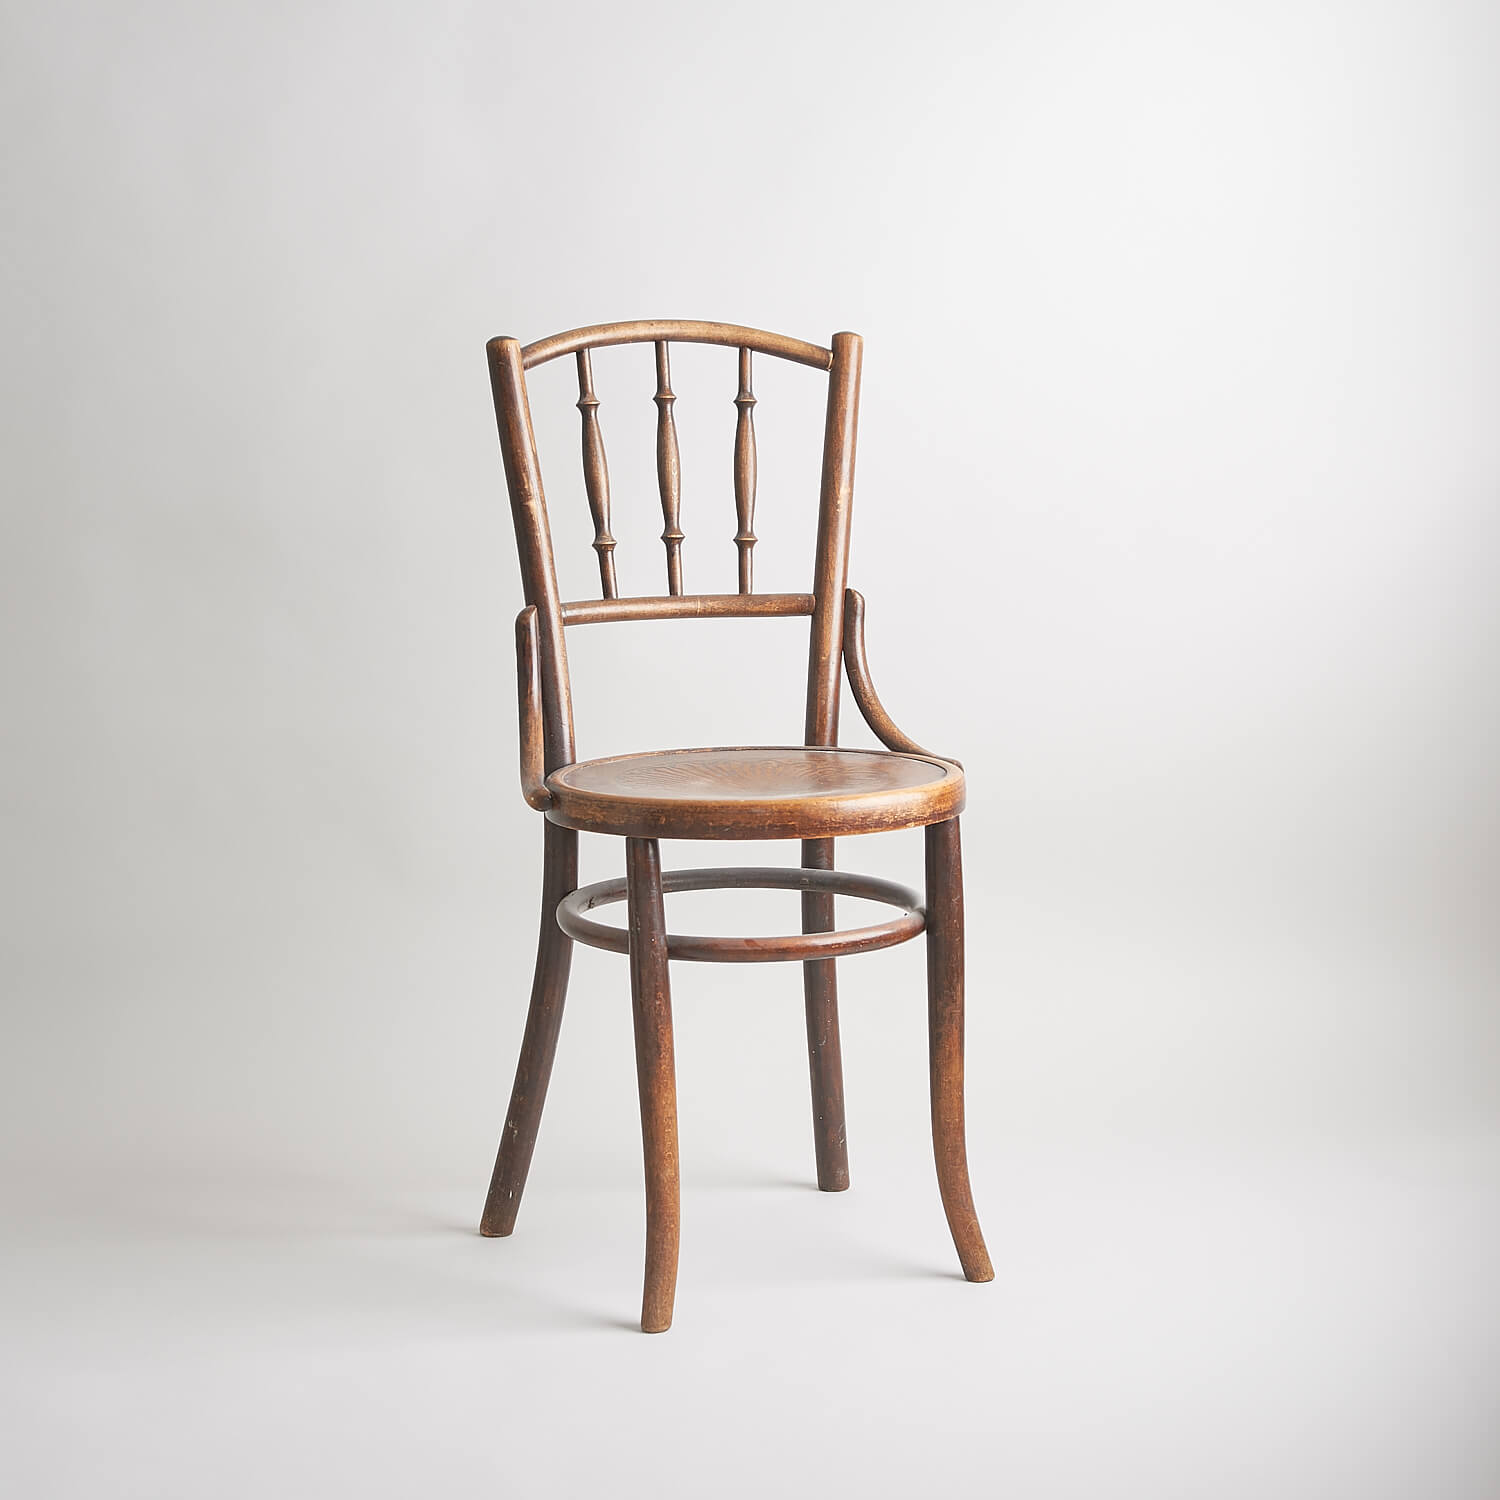 Vintage bentwood stained chair perfect for photographic shoots